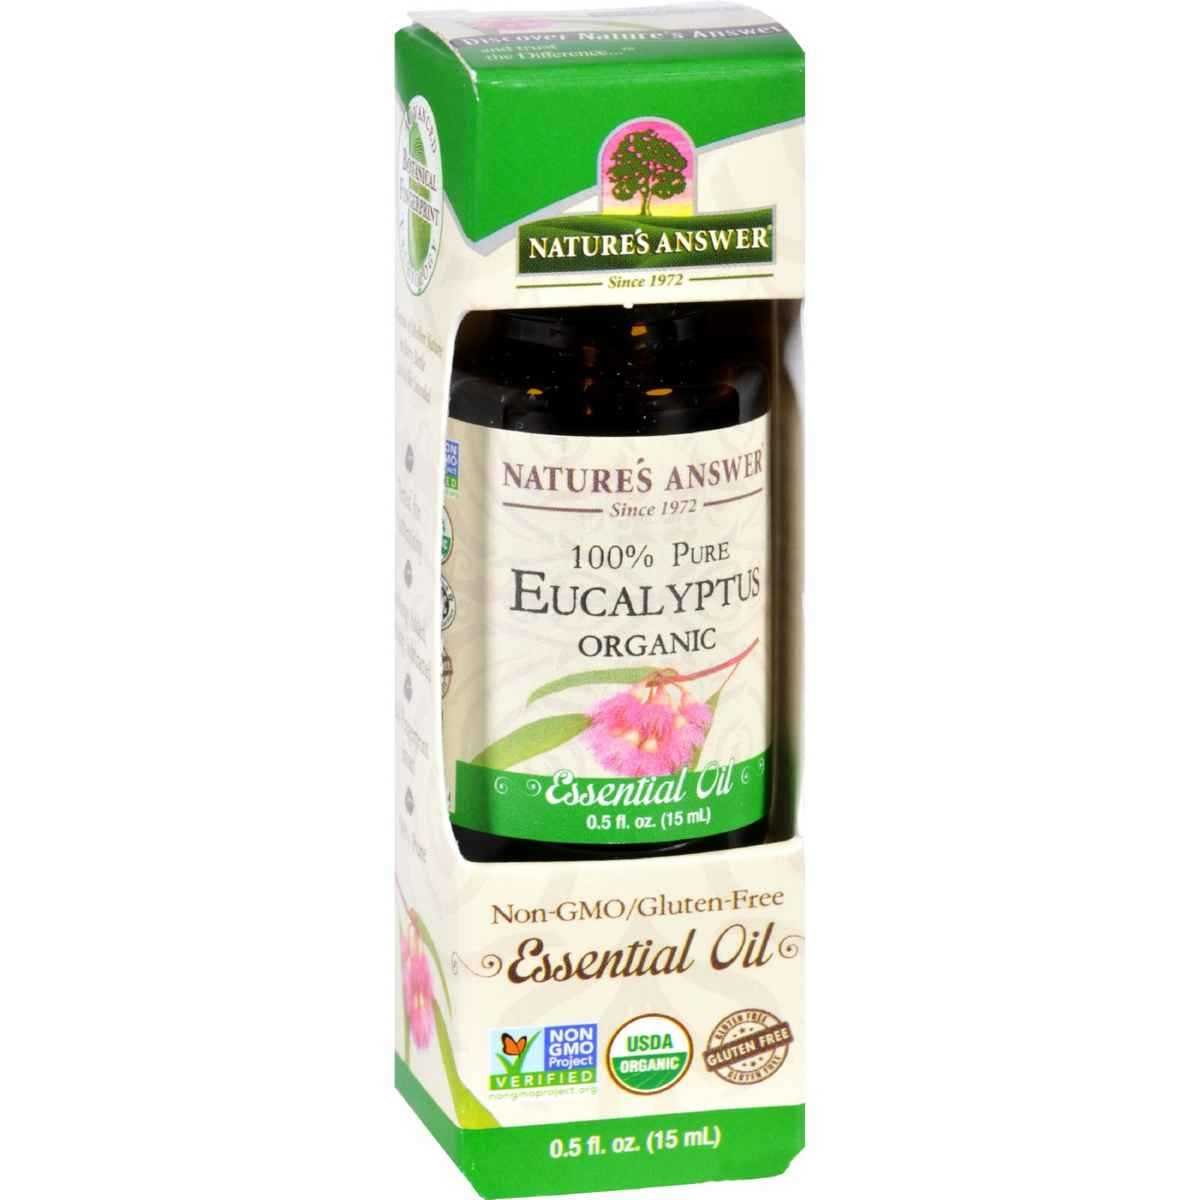 Nature's Answer - Essential Oil Organic Eucalyptus 0.5 oz UNFI - Select Nutrition